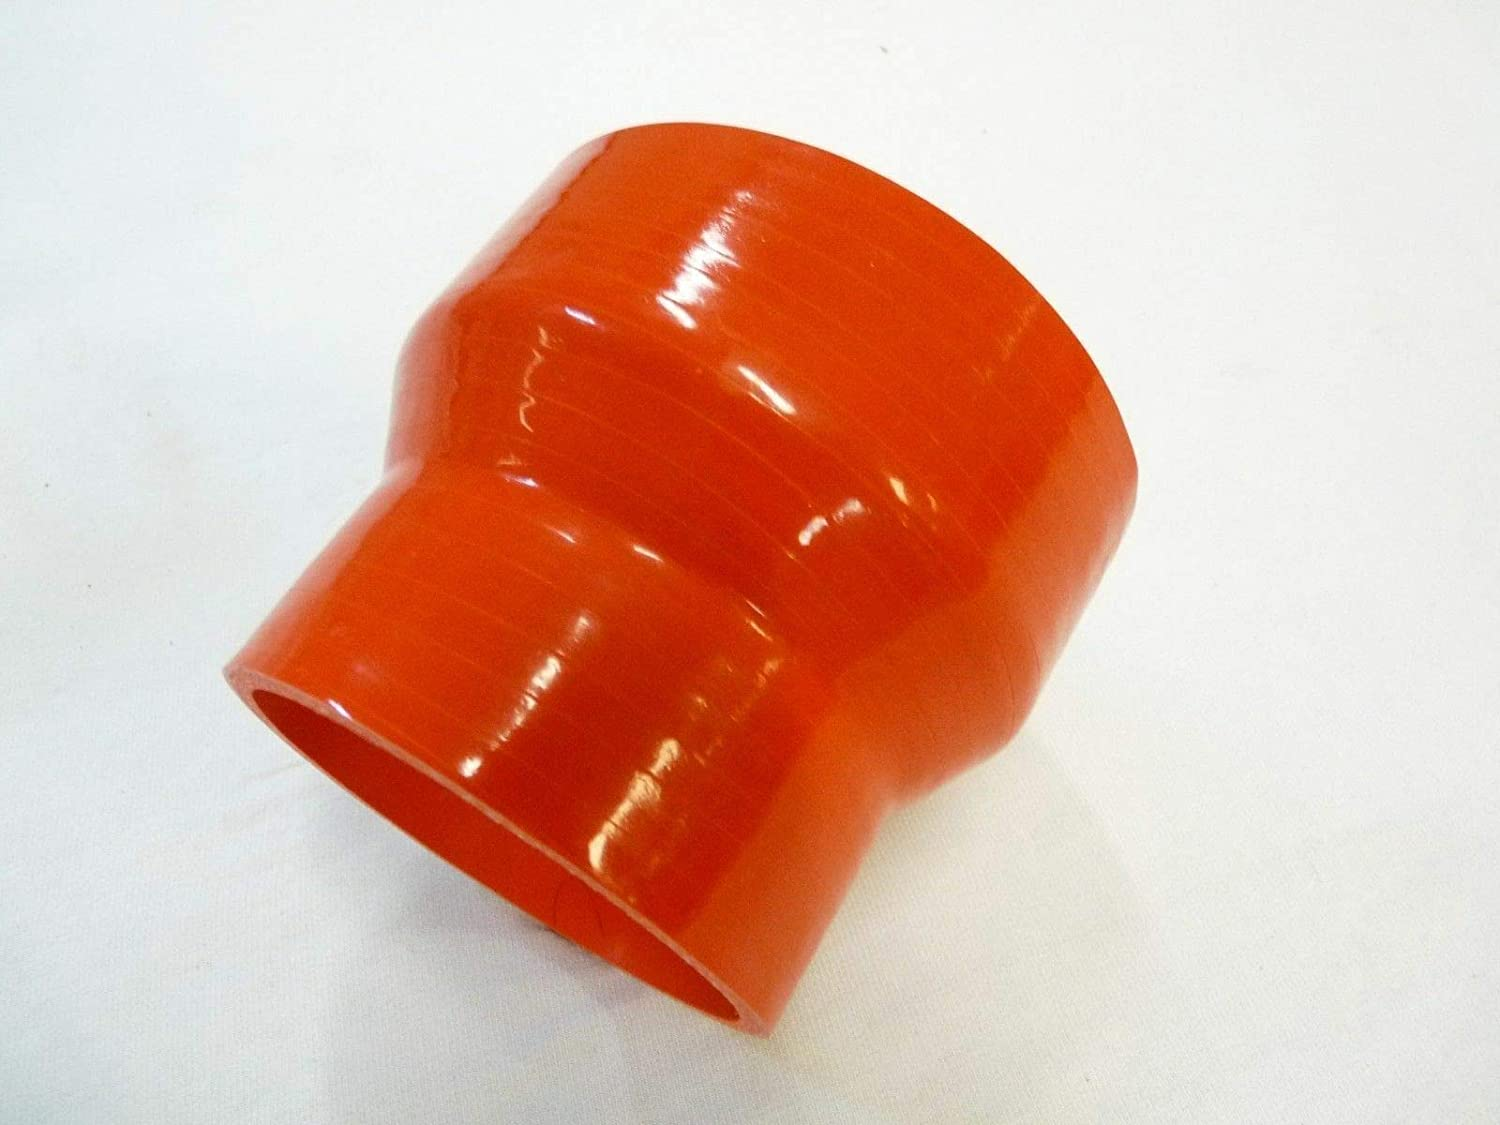 OBX Silicon Reinforced Reducer Coupler 3.5-4.5 Red Heavy Duty